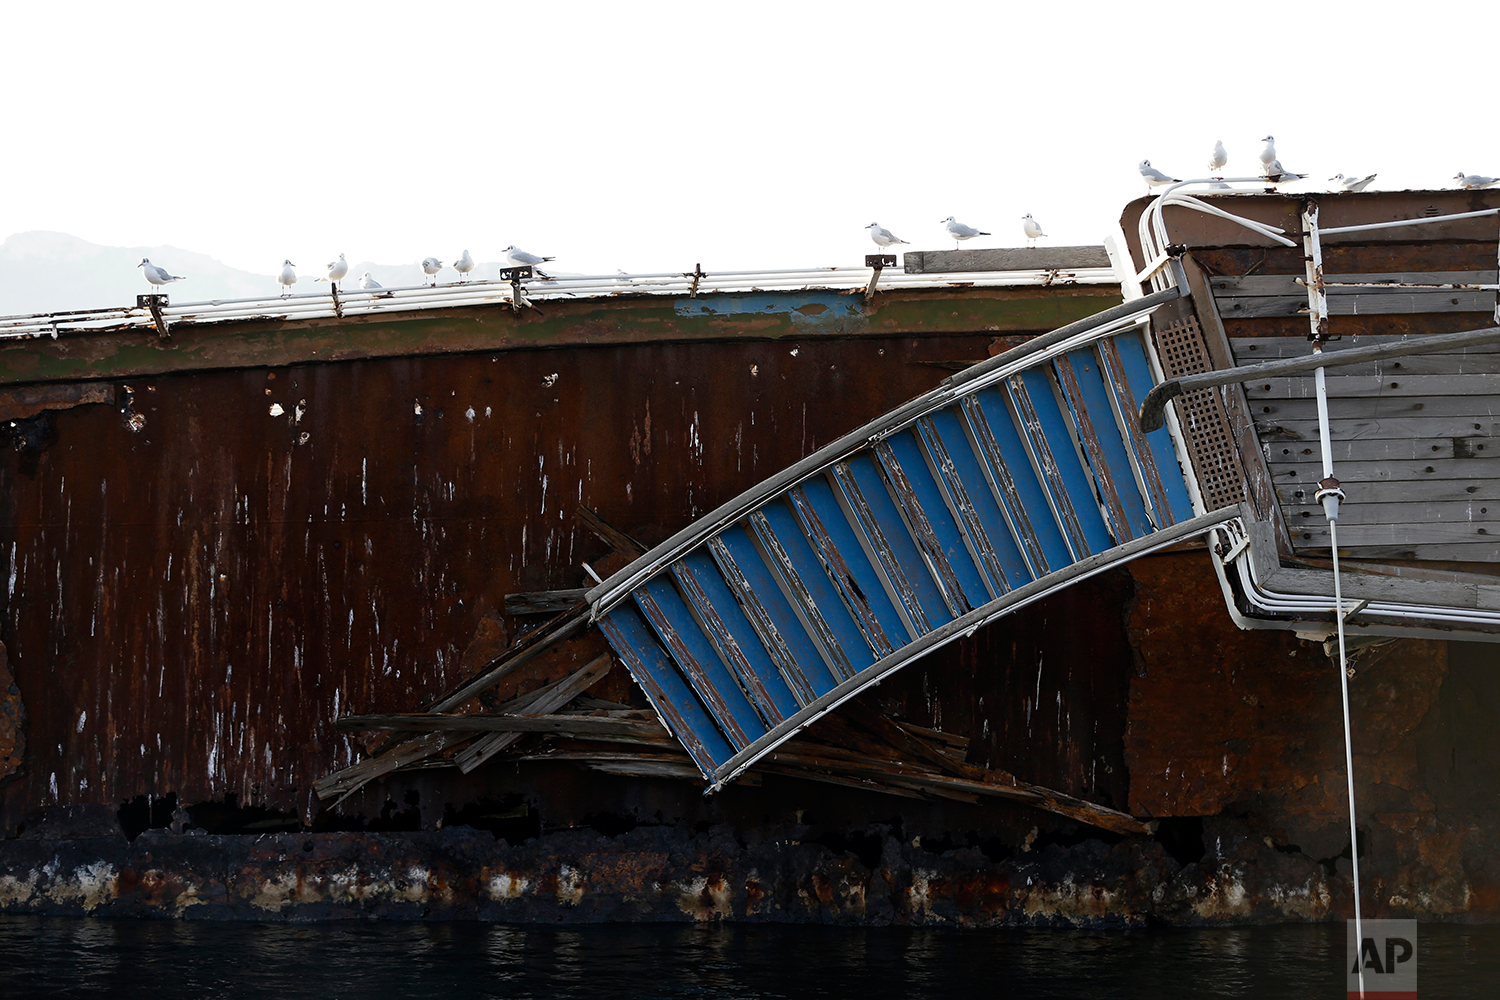 In this Friday, Dec. 4, 2018 photo, seagulls sit on a half sunken cruise ship in the Gulf of Elefsina, west of Athens. (AP Photo/Thanassis Stavrakis)